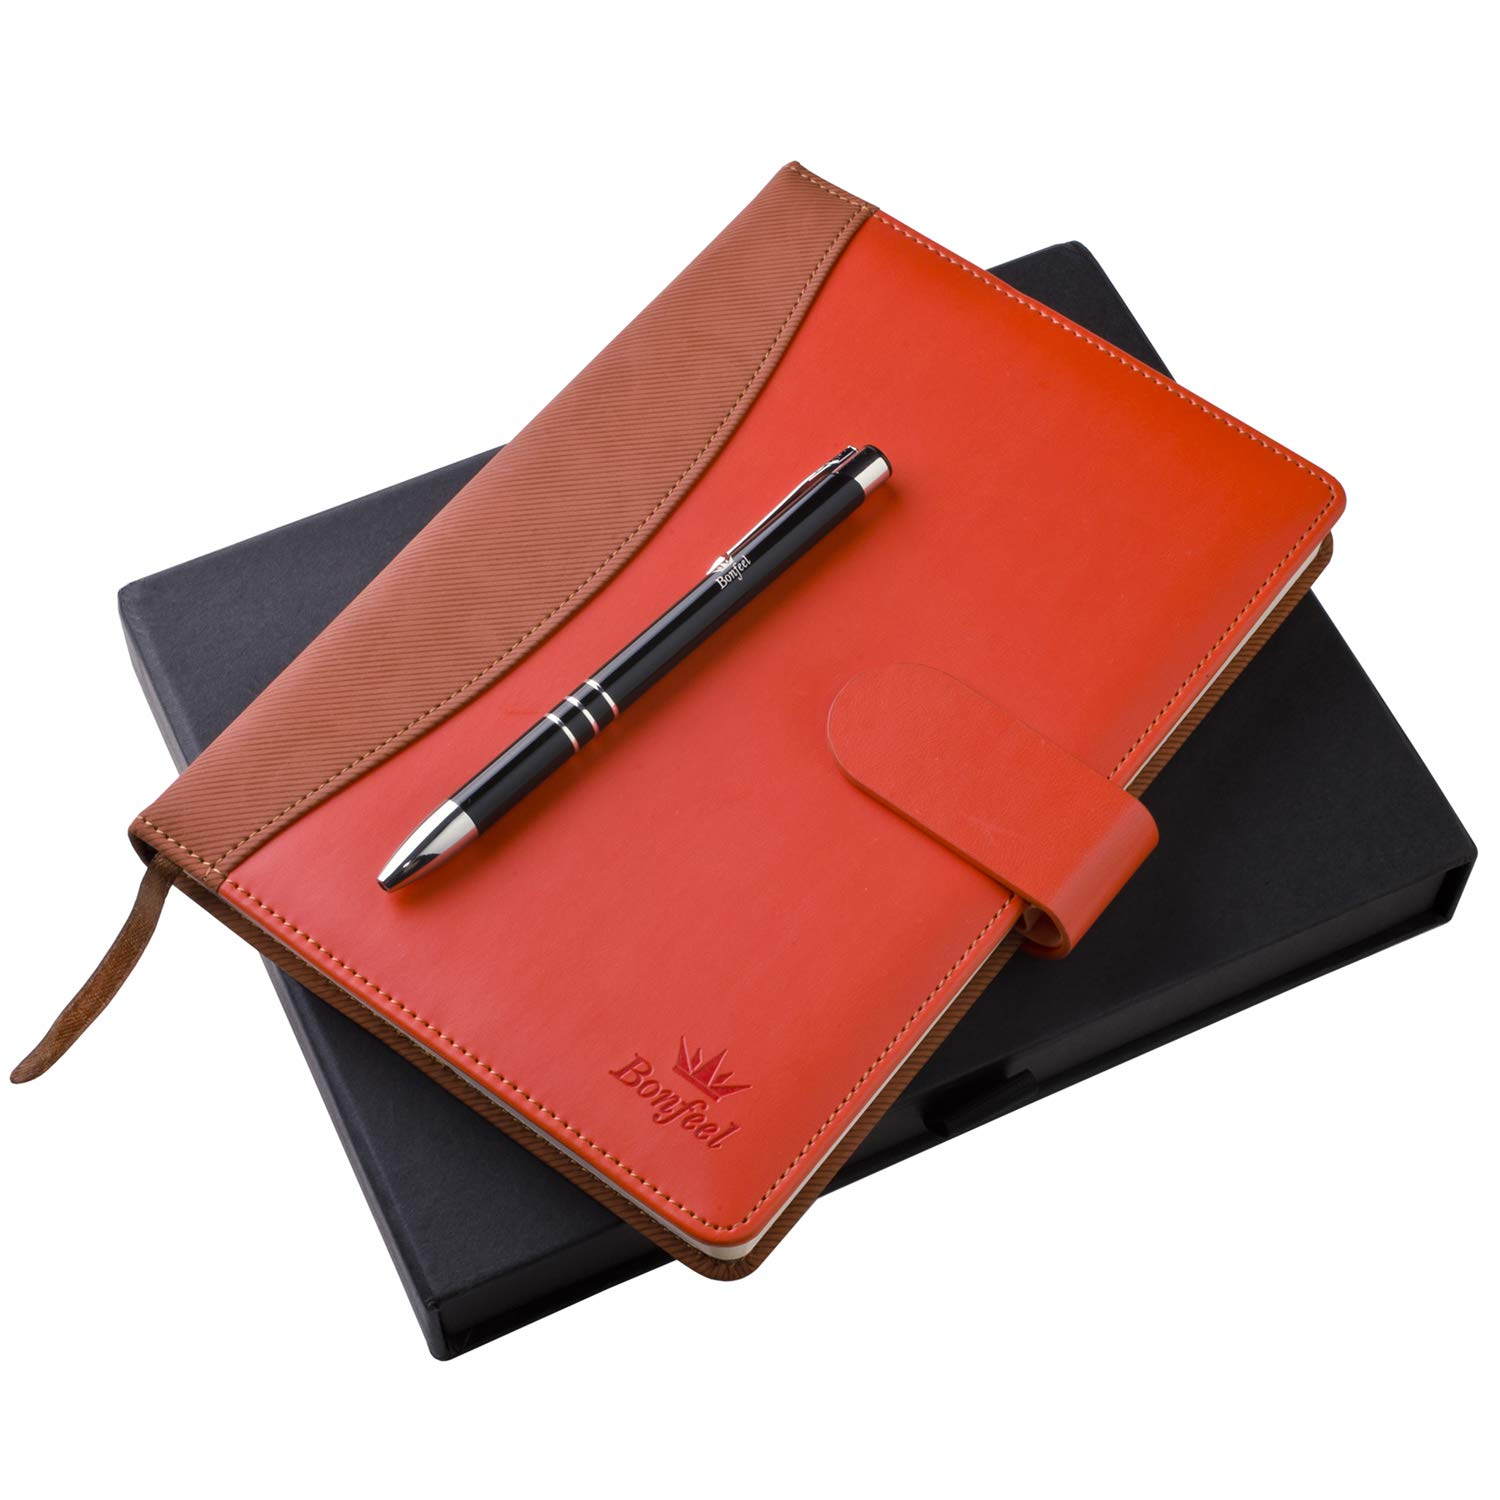 Graduation Gifts For Him Her Leather Notebook Journal Gift Set Handmade Unique Ideas Luxury PresentsWriter